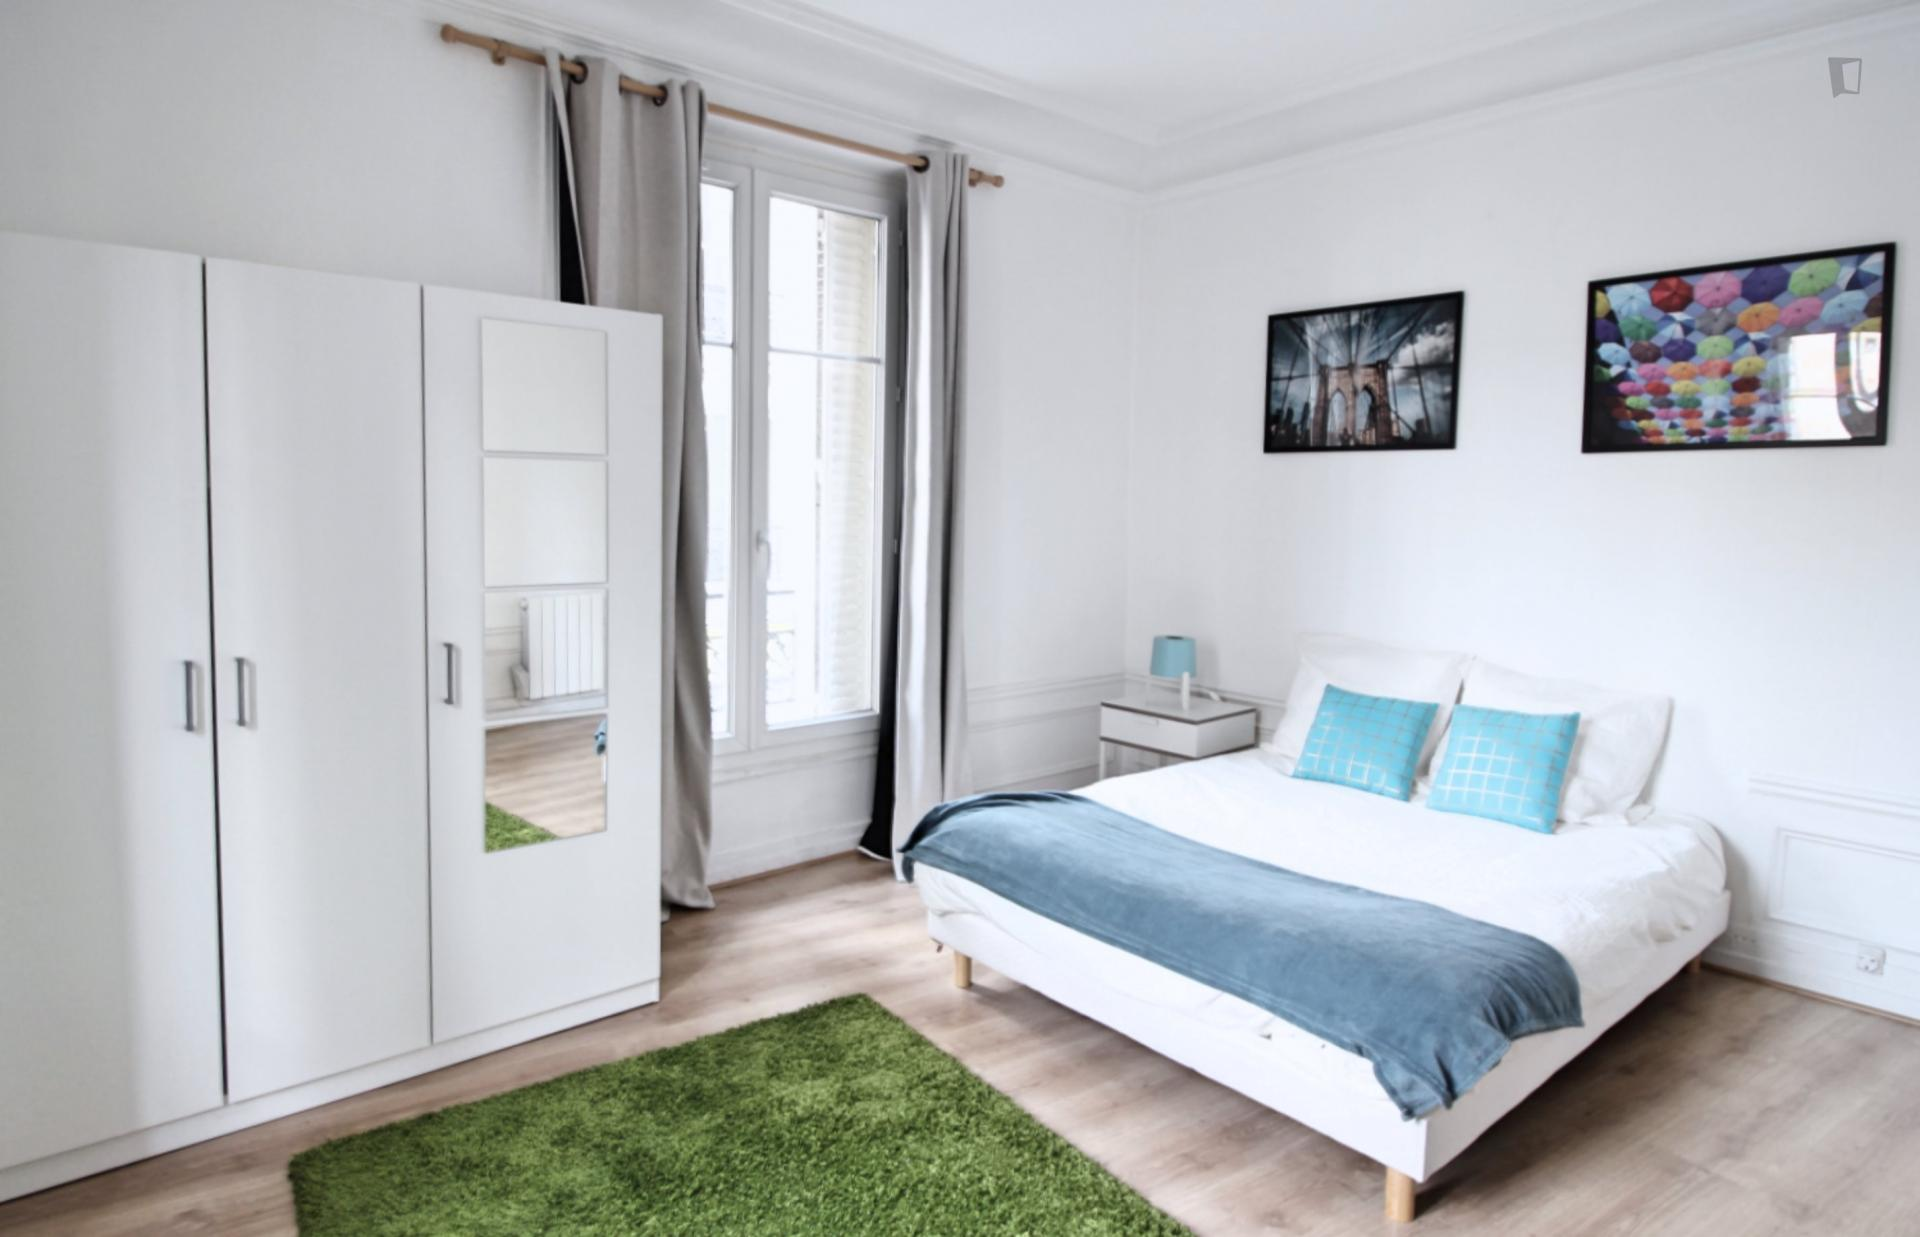 Chapelle - Double bedroom in an apartment in Paris